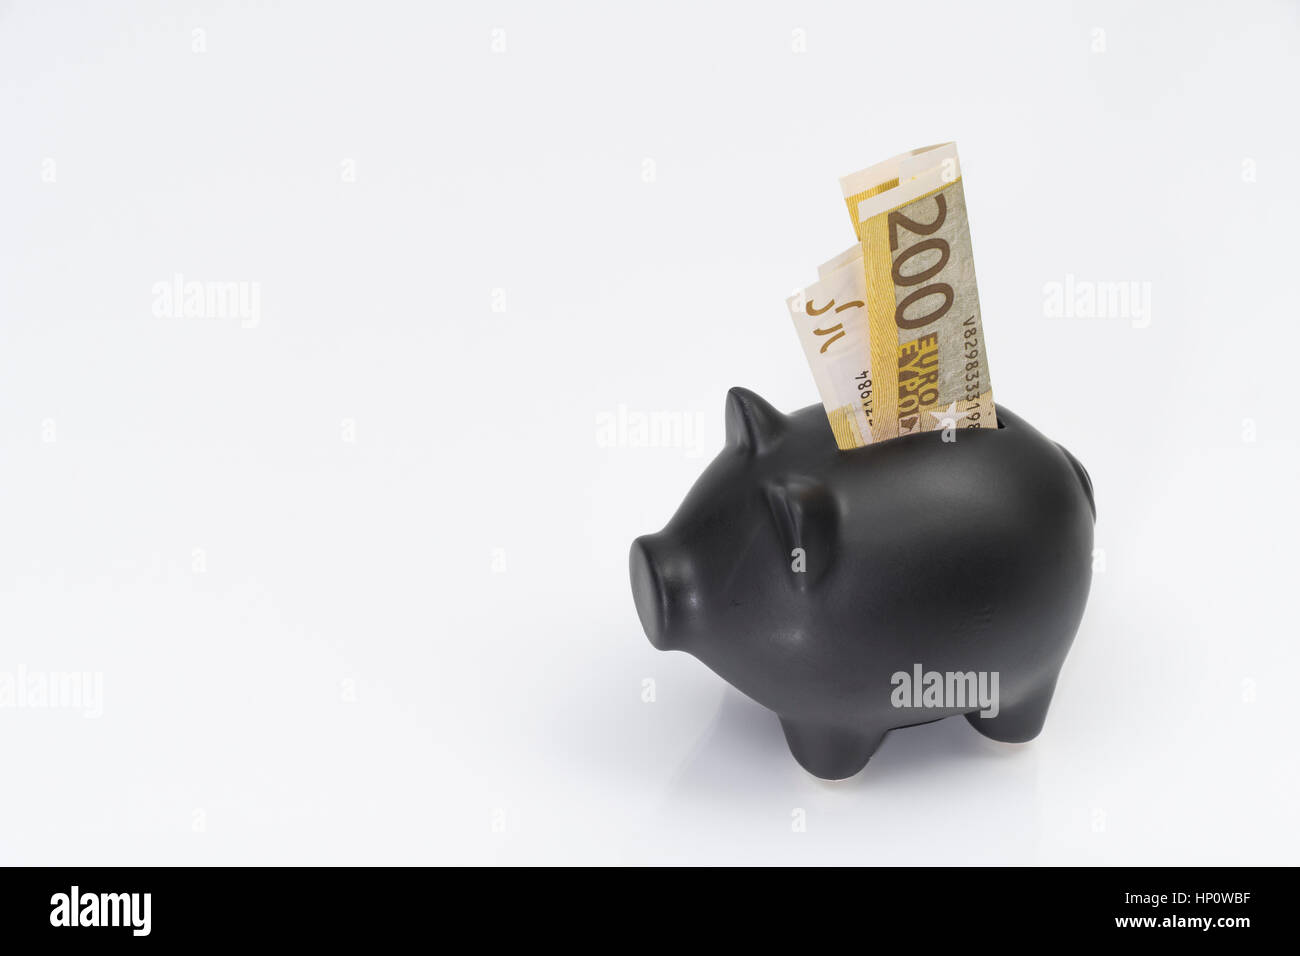 Black Piggy bank with 200 Euro banknote placed in coin slot. Metaphor for personal savings, or EU / European / Brussels Stock Photo